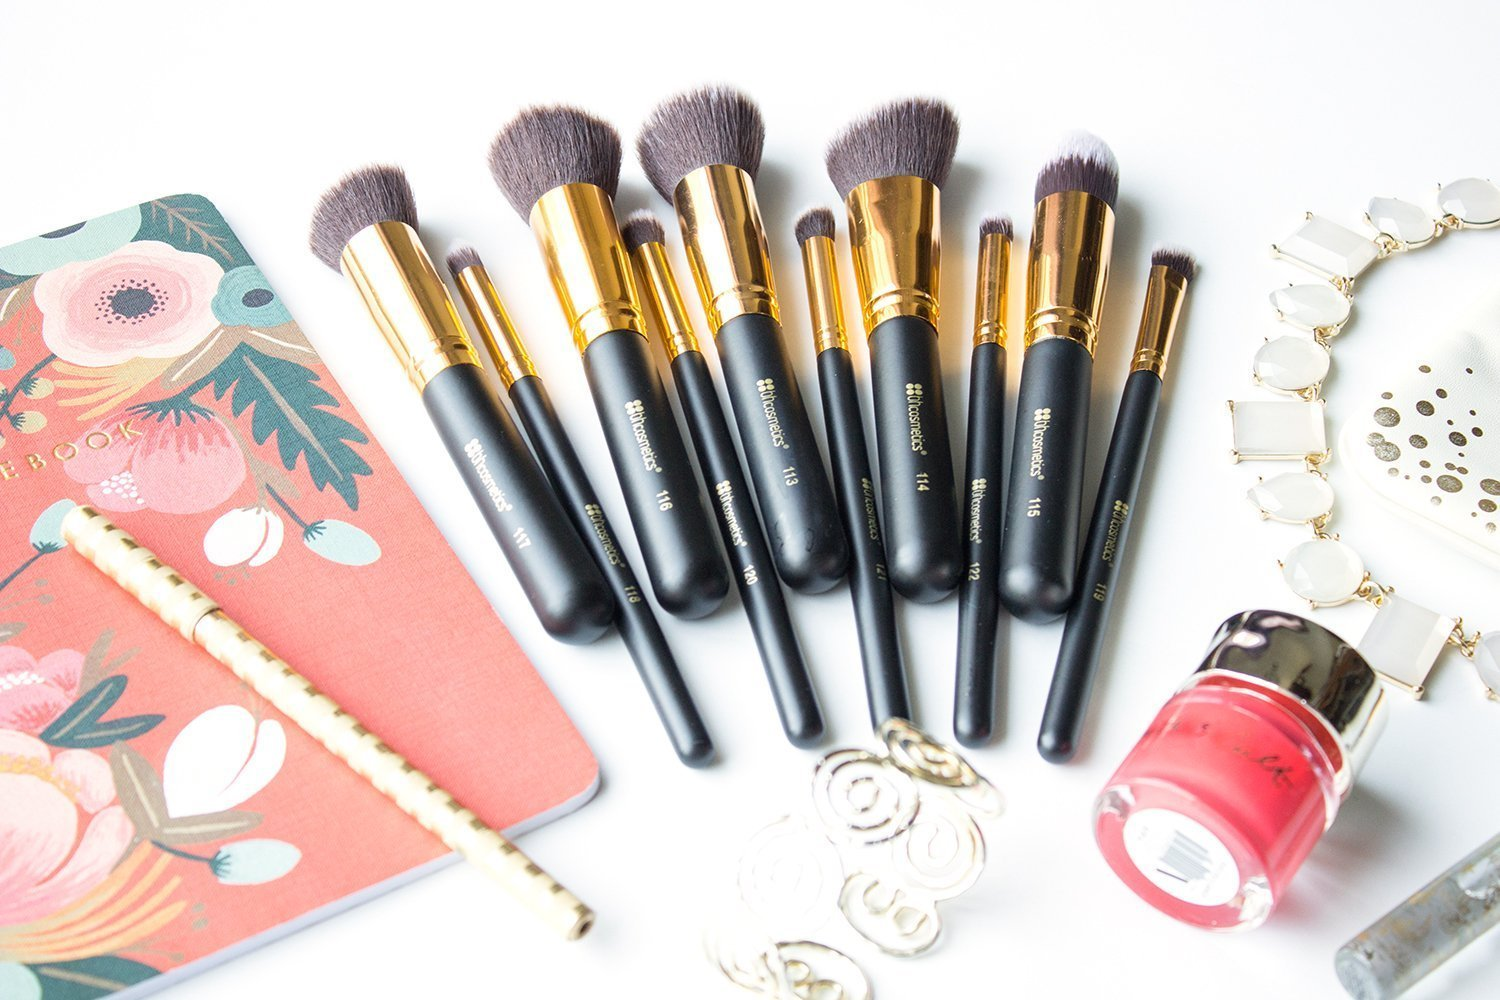 6c3acf94dcaf BH Cosmetics Sculpt and Blend Brush Set Review - Little Blushing Birdie